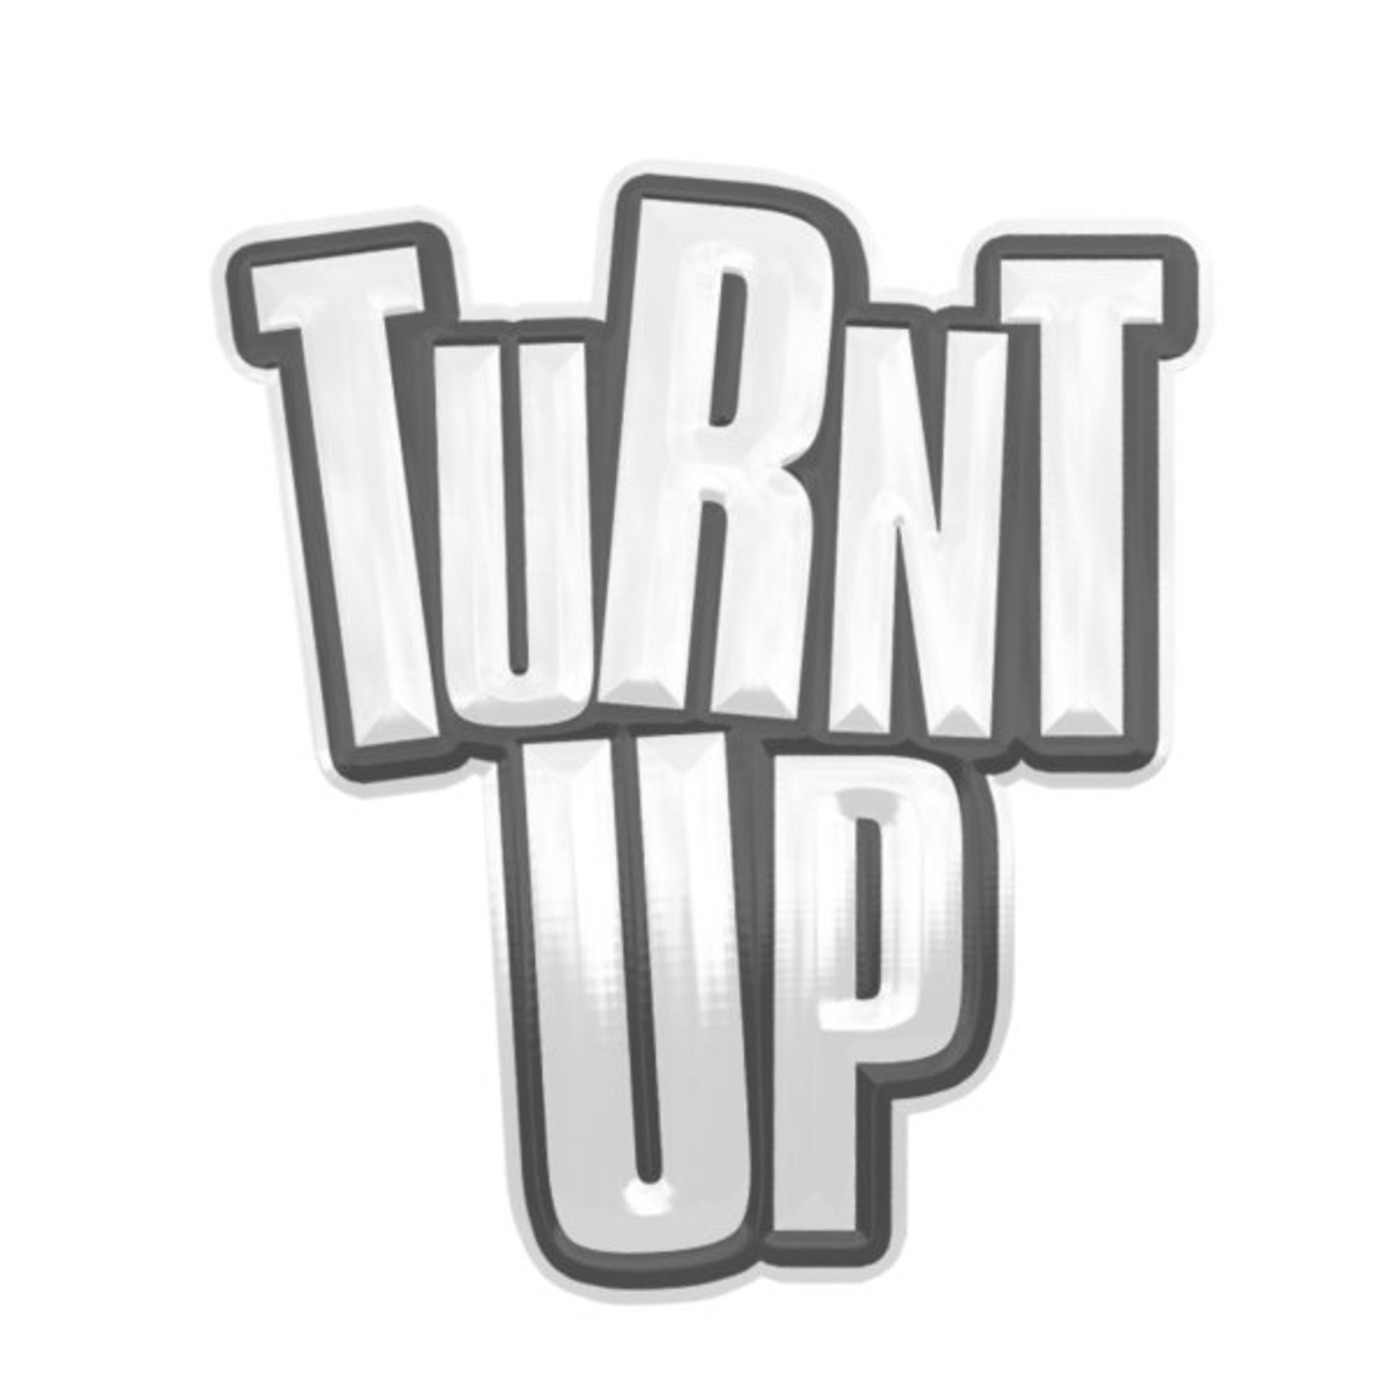 ALL NEW TURNT UP RADIO